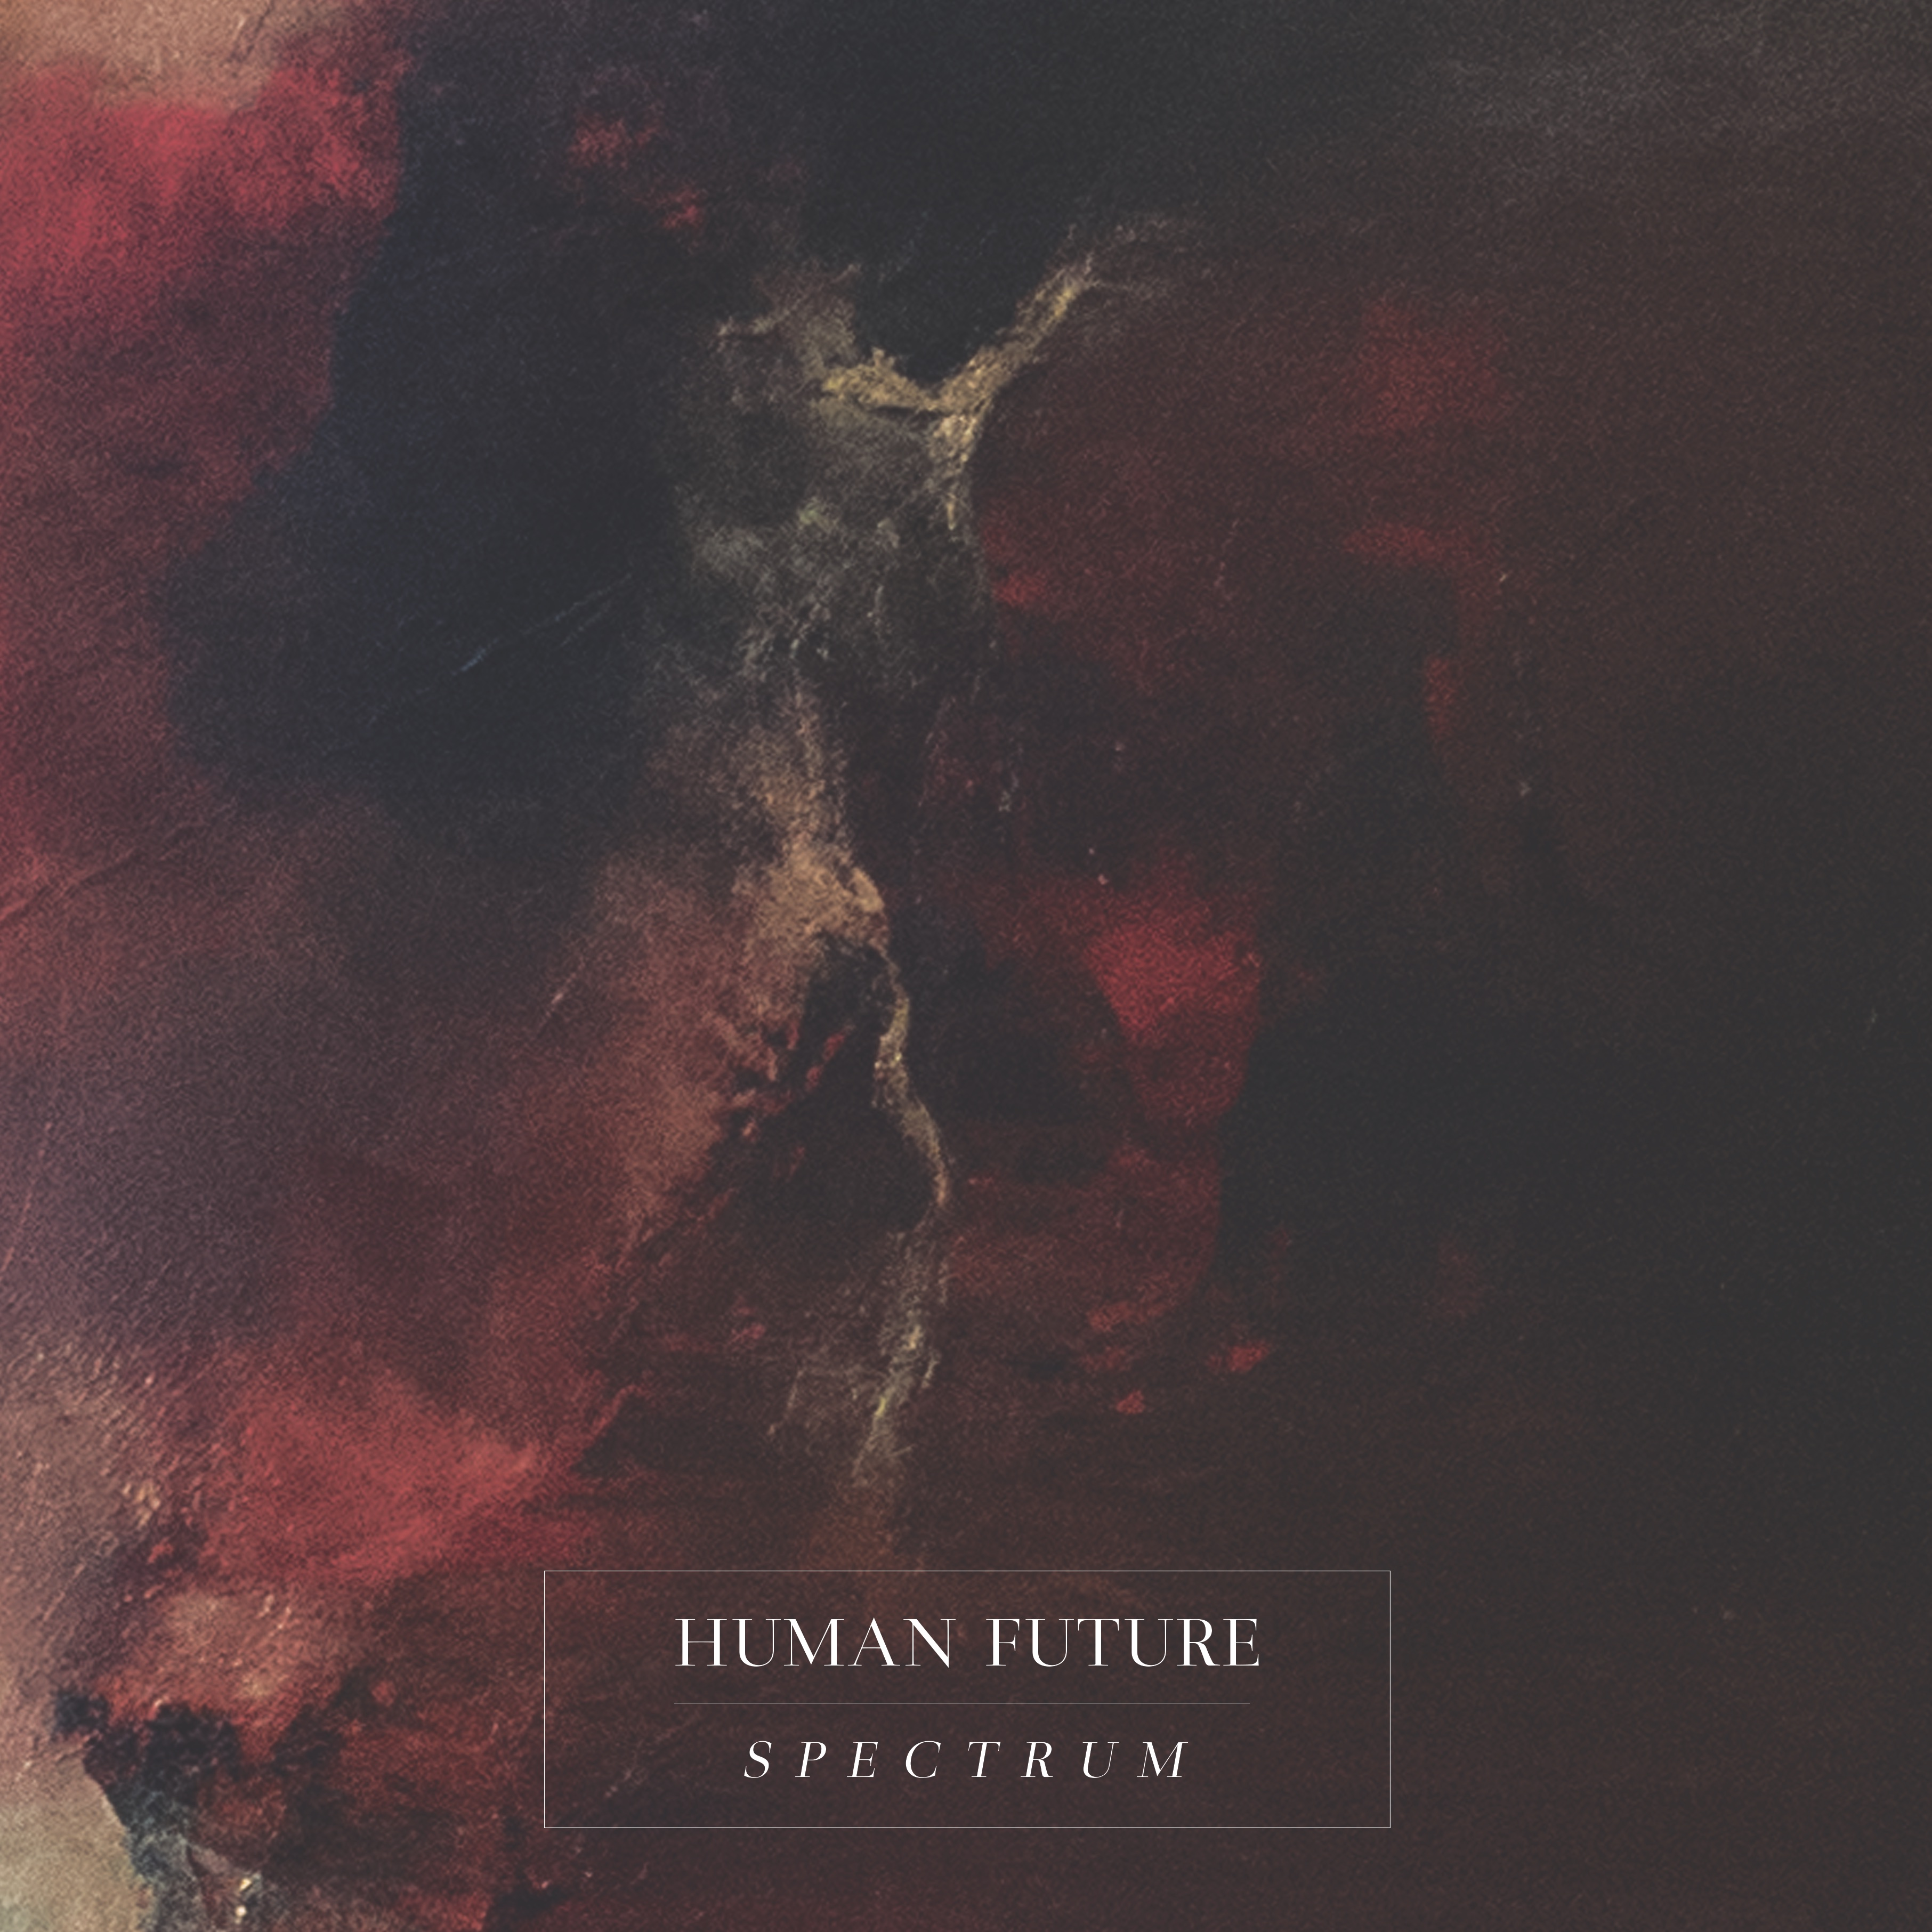 Human Future - 'Spectrum' LP